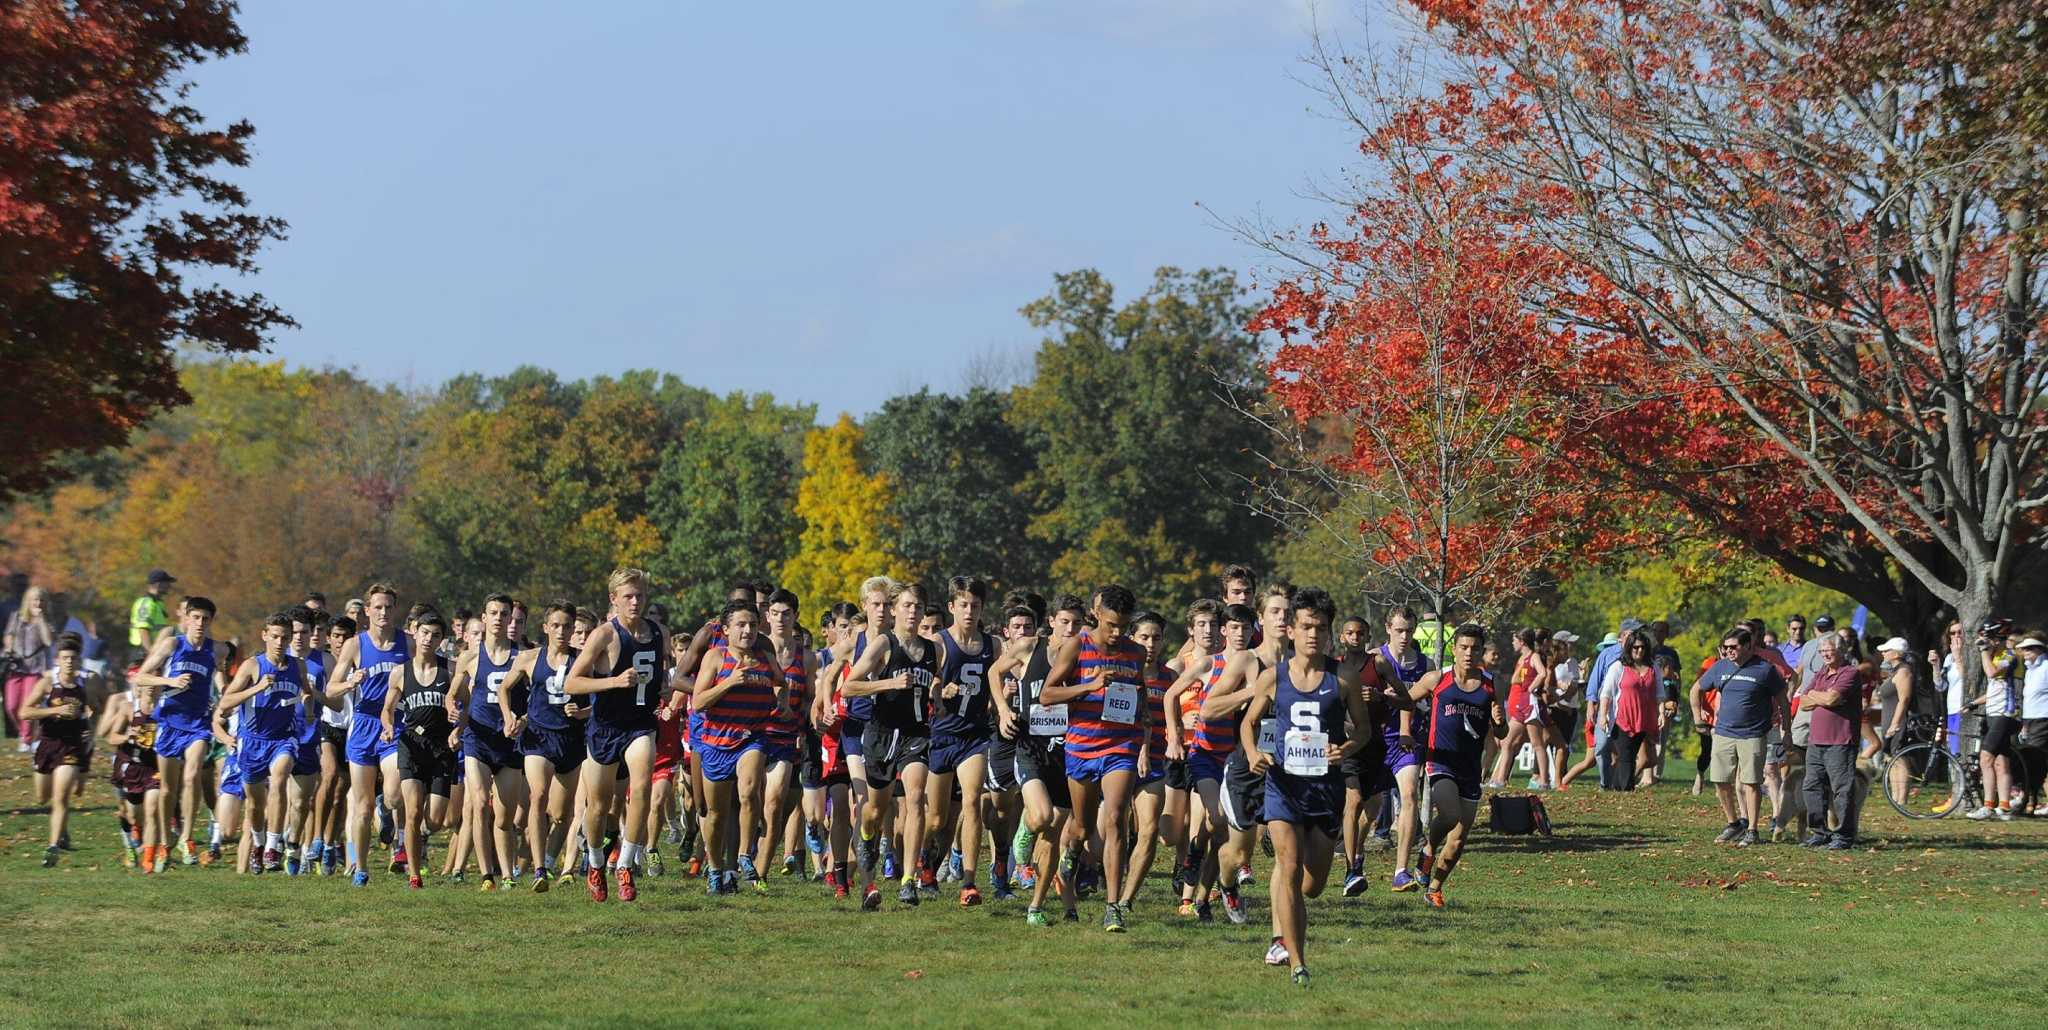 Tops danbury for fciac boys cross country team title the hour